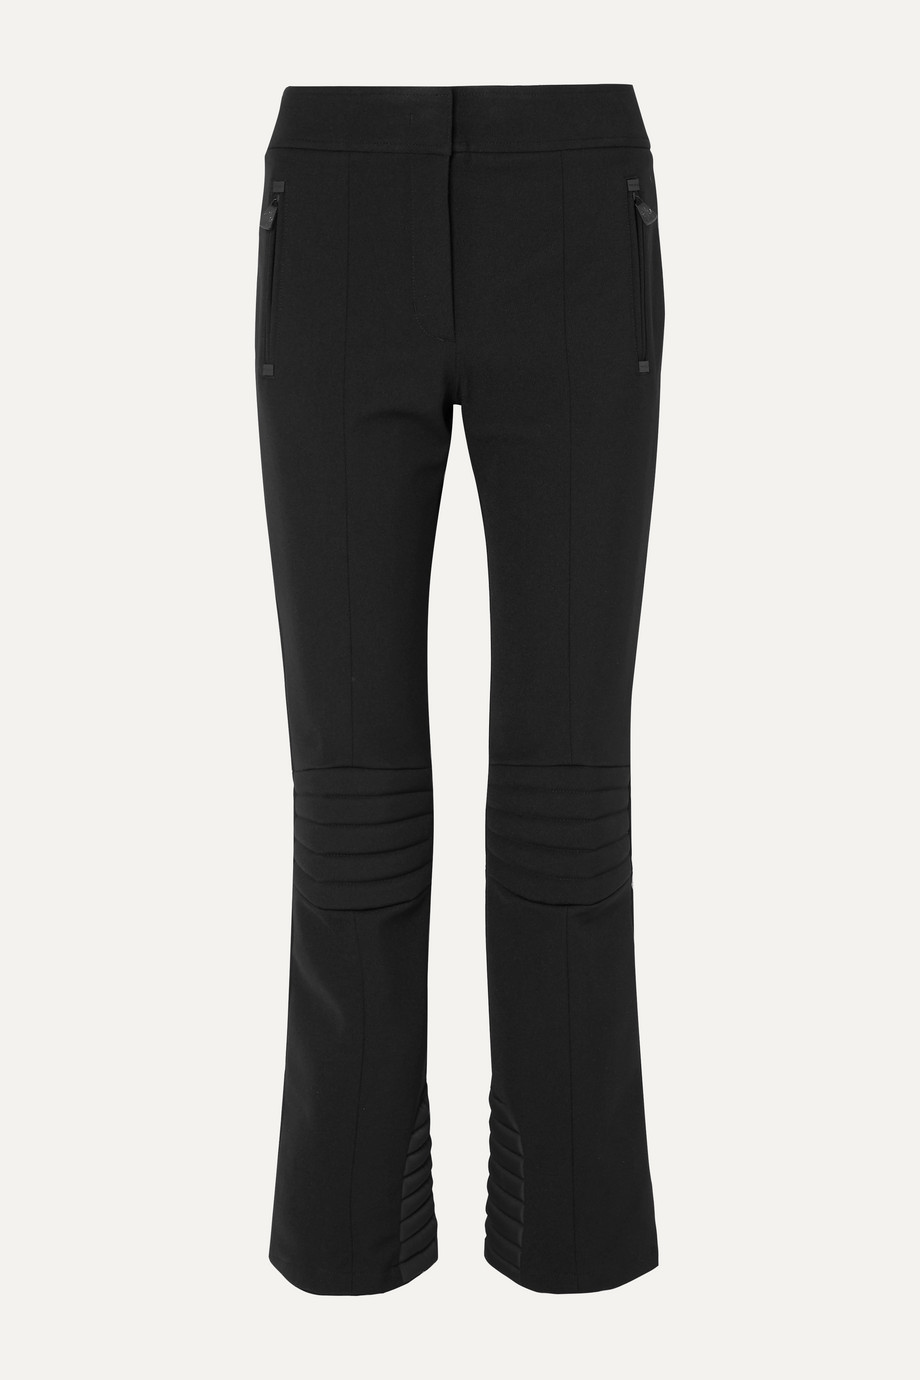 Moncler Grenoble Stretch-twill ski pants